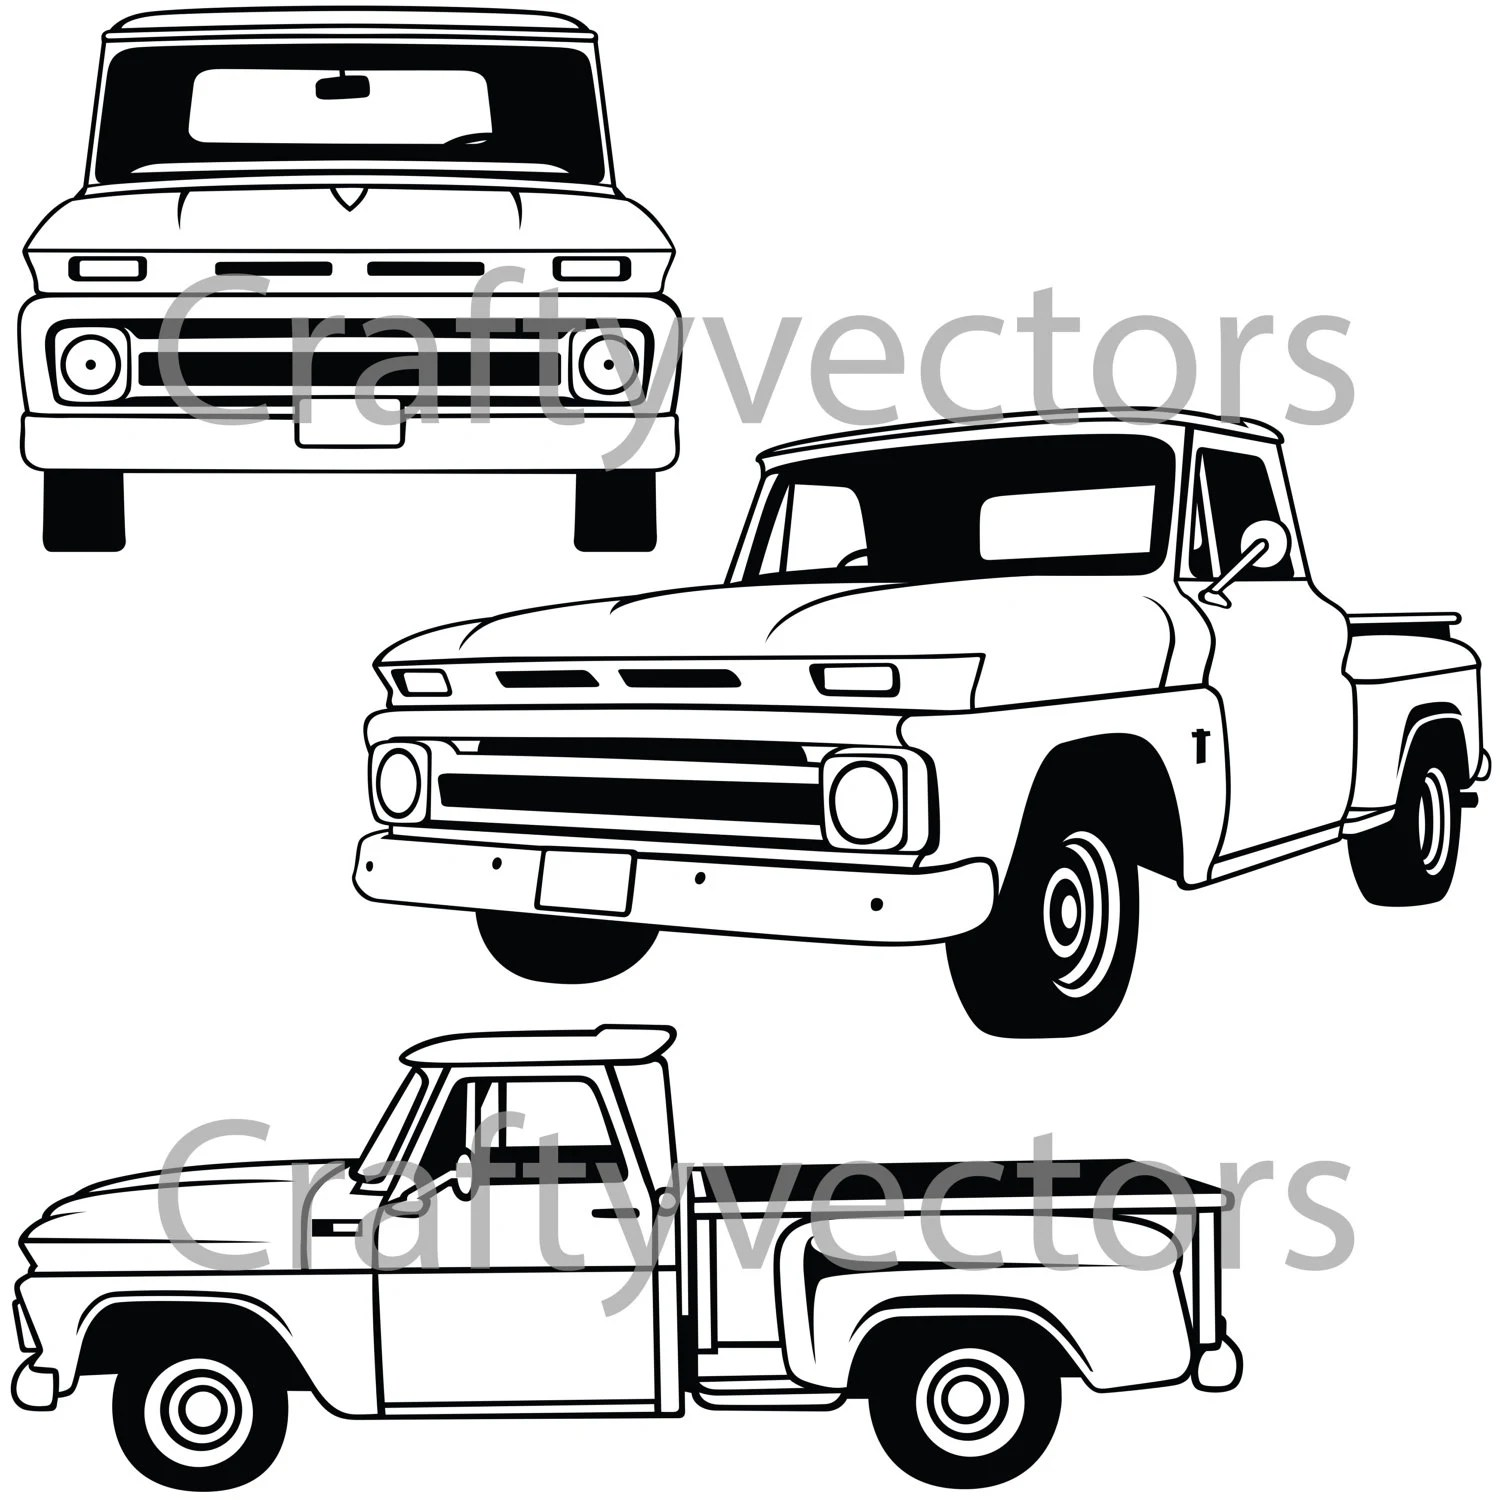 Chevy C10 Stepside Vector File